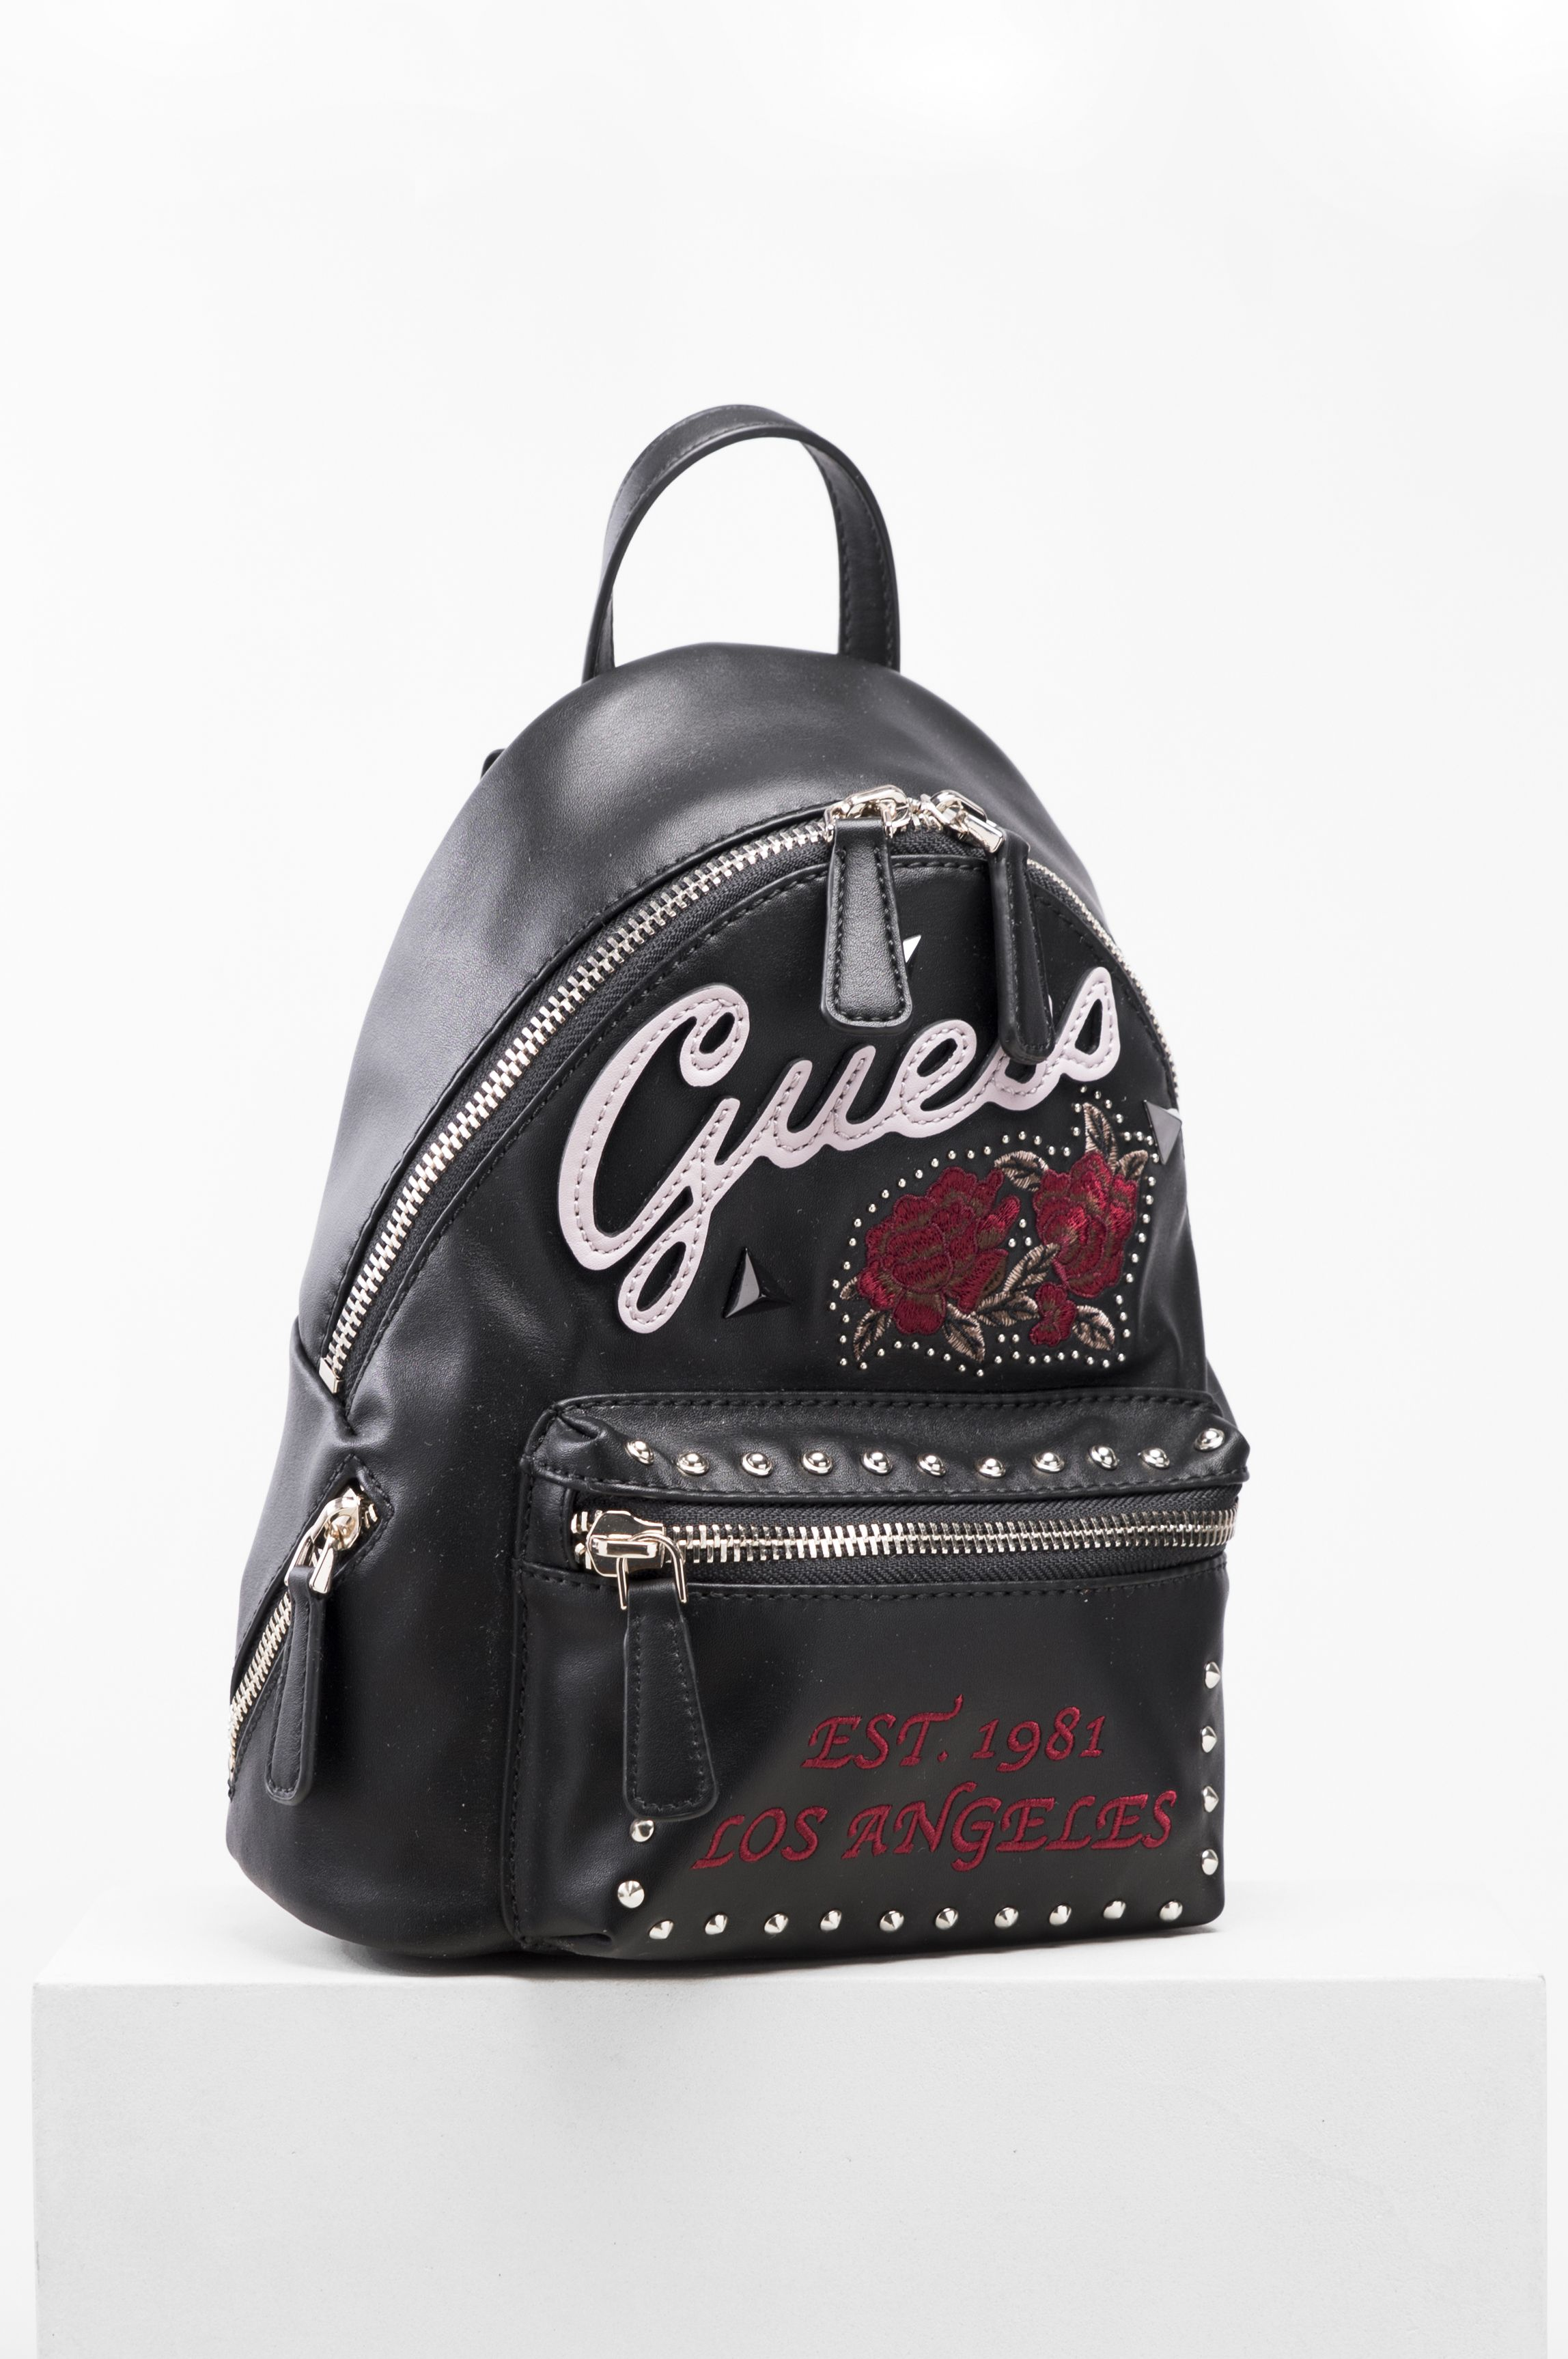 5124b48e27 guess  backpack  black  red  bag  leather